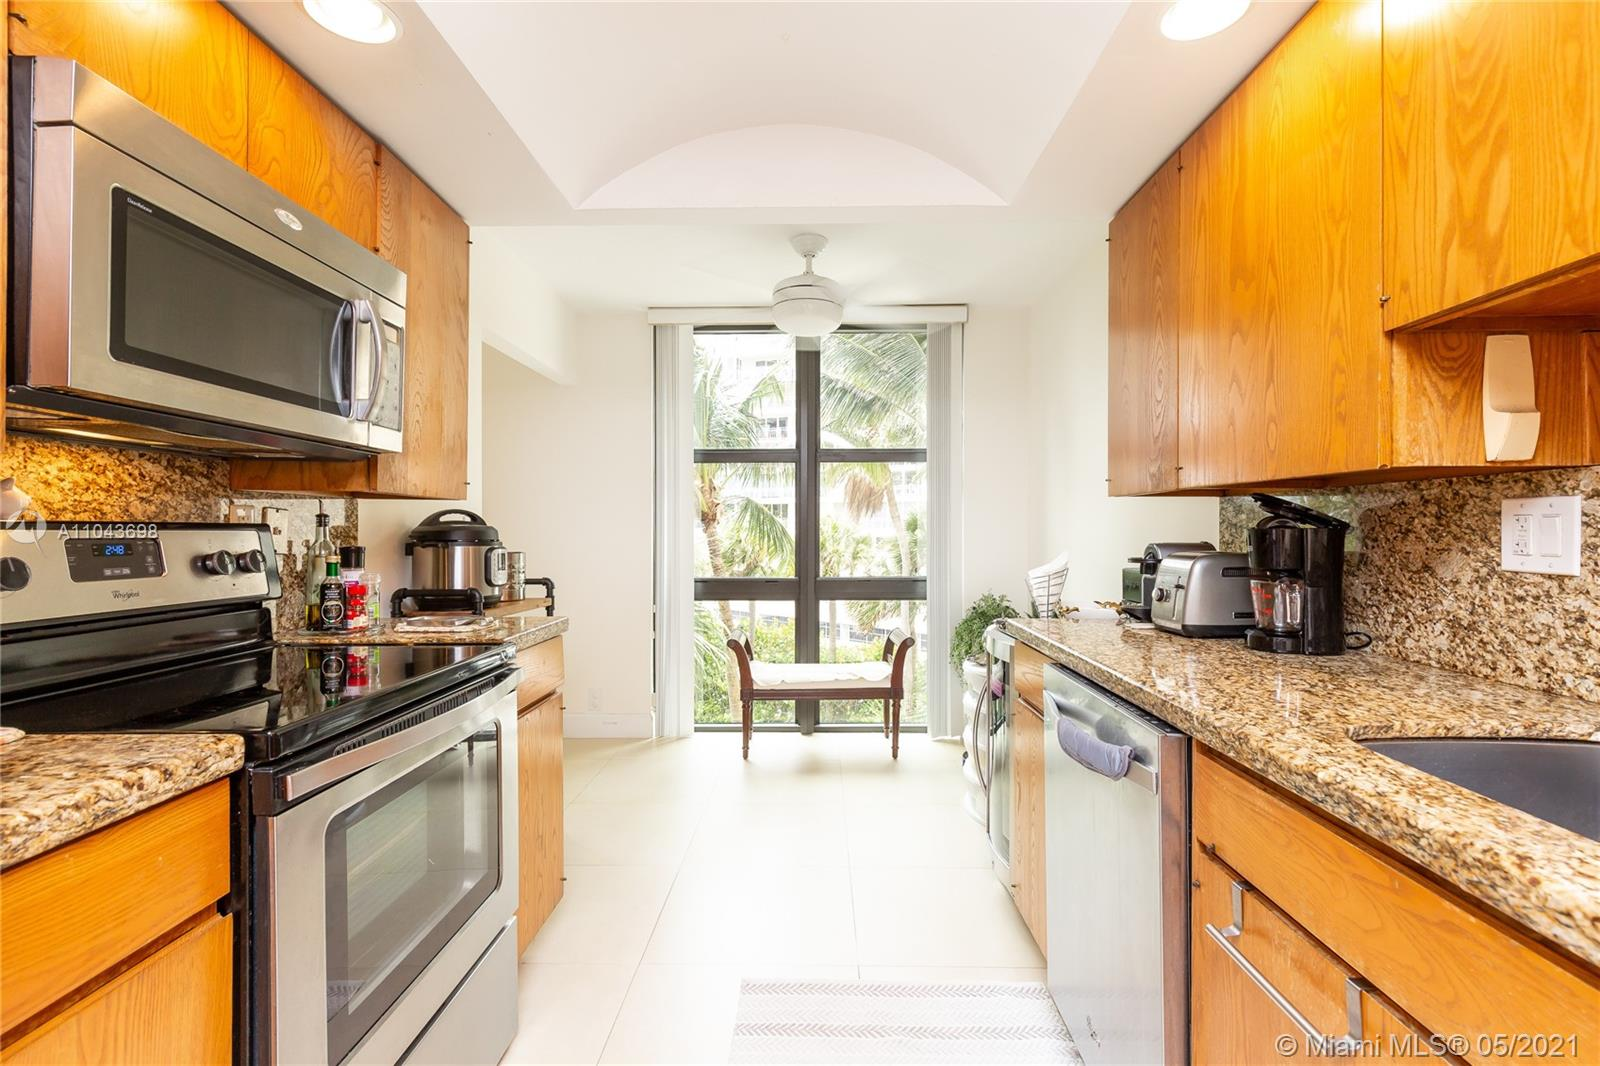 Kitchen features granite tops, wood cabinets and stainless steel appliances